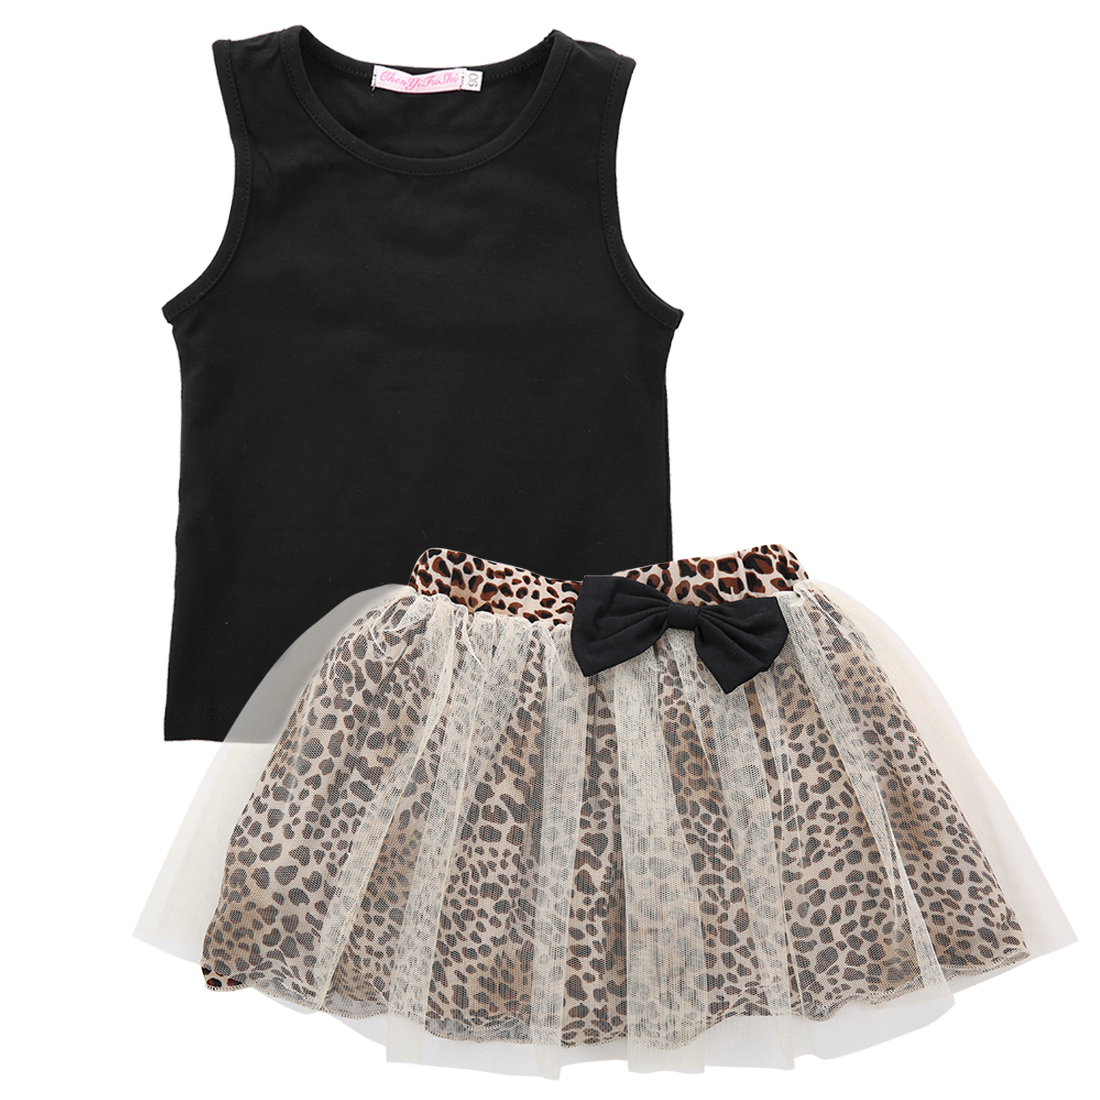 Emmababy Toddler Kids Baby Girl Black Tank Tops+Bow Mesh Leopard Skirts Sleeveless 2PCS Infant Girl Clothes 0-5 Years